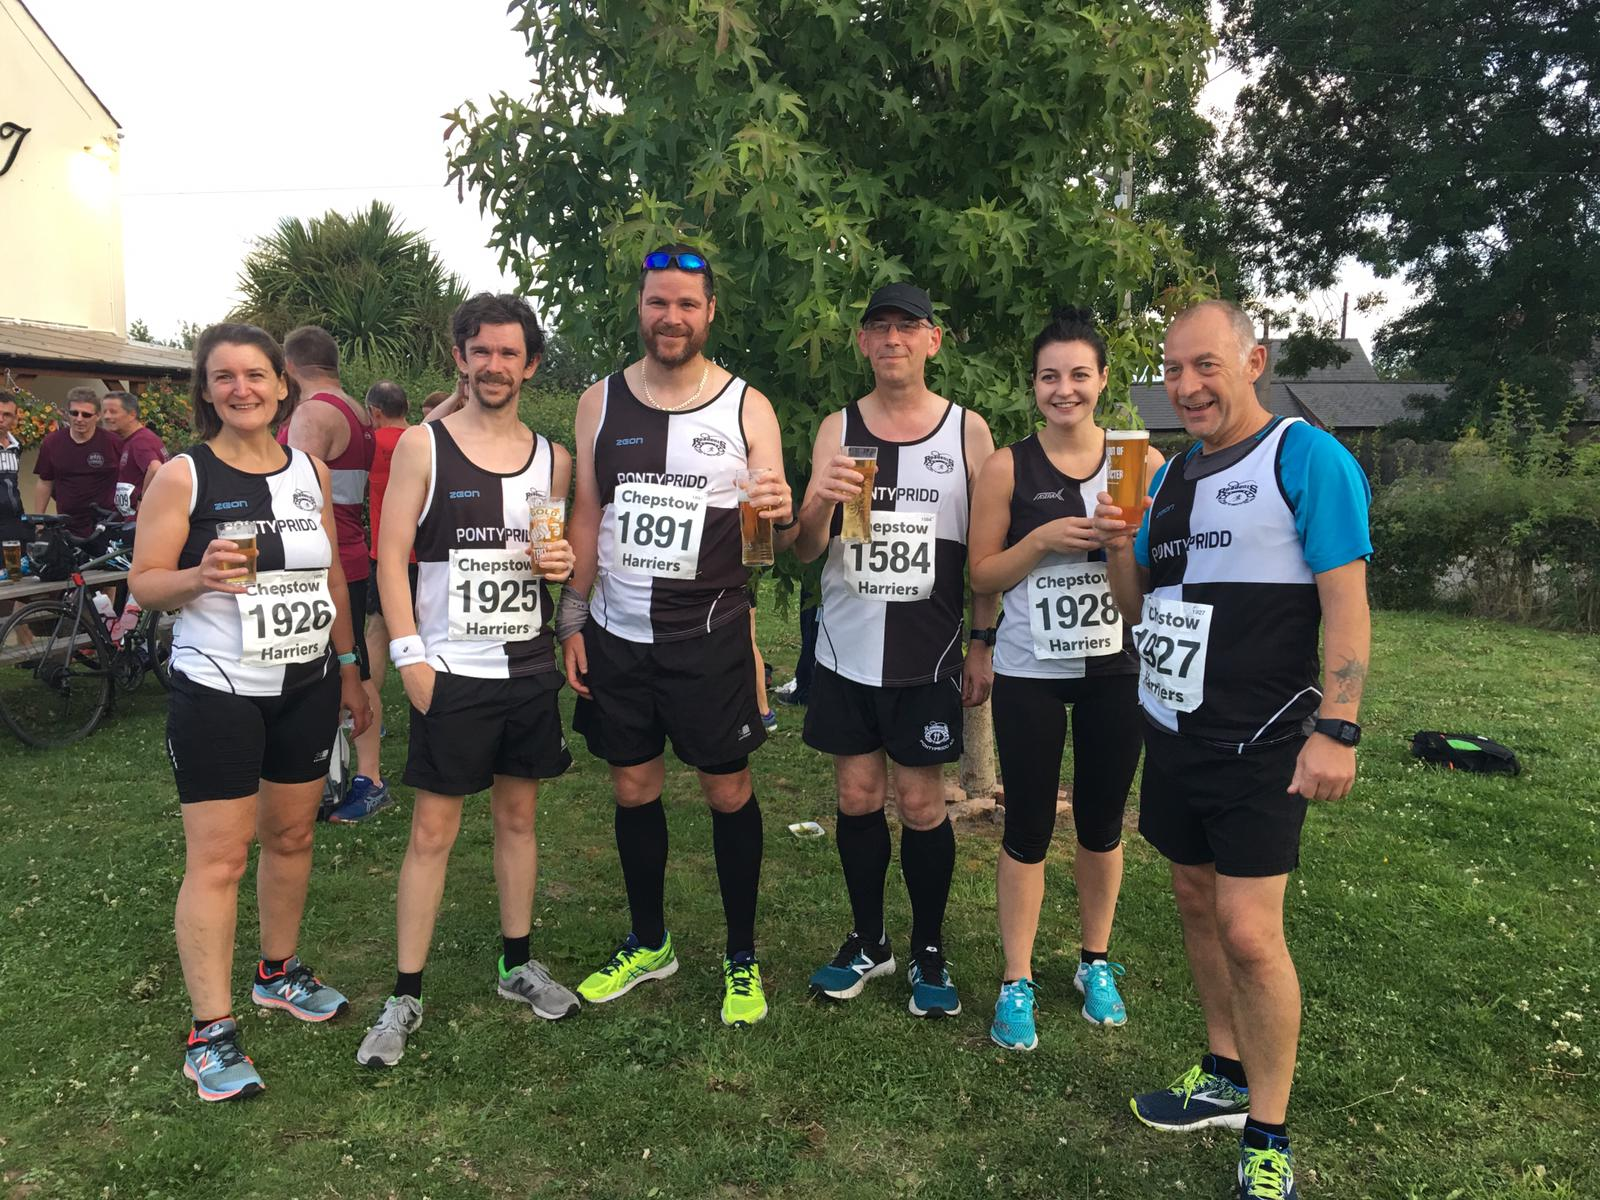 Rose Inn 4 Mile race 4 13th Aug 19